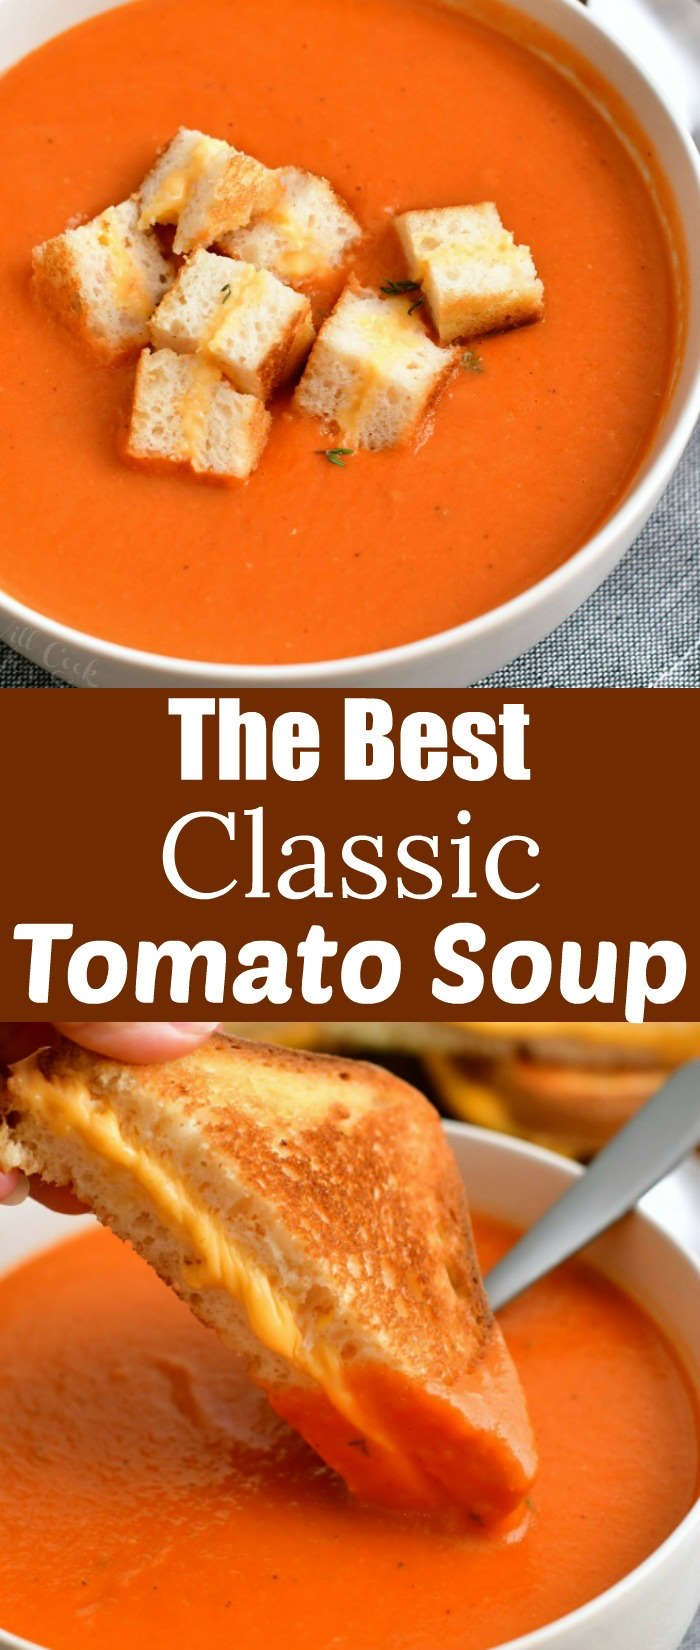 "titled photo collage ""The Best Classic Tomato Soup"" - shows bowl of soup with grilled cheese croutons"